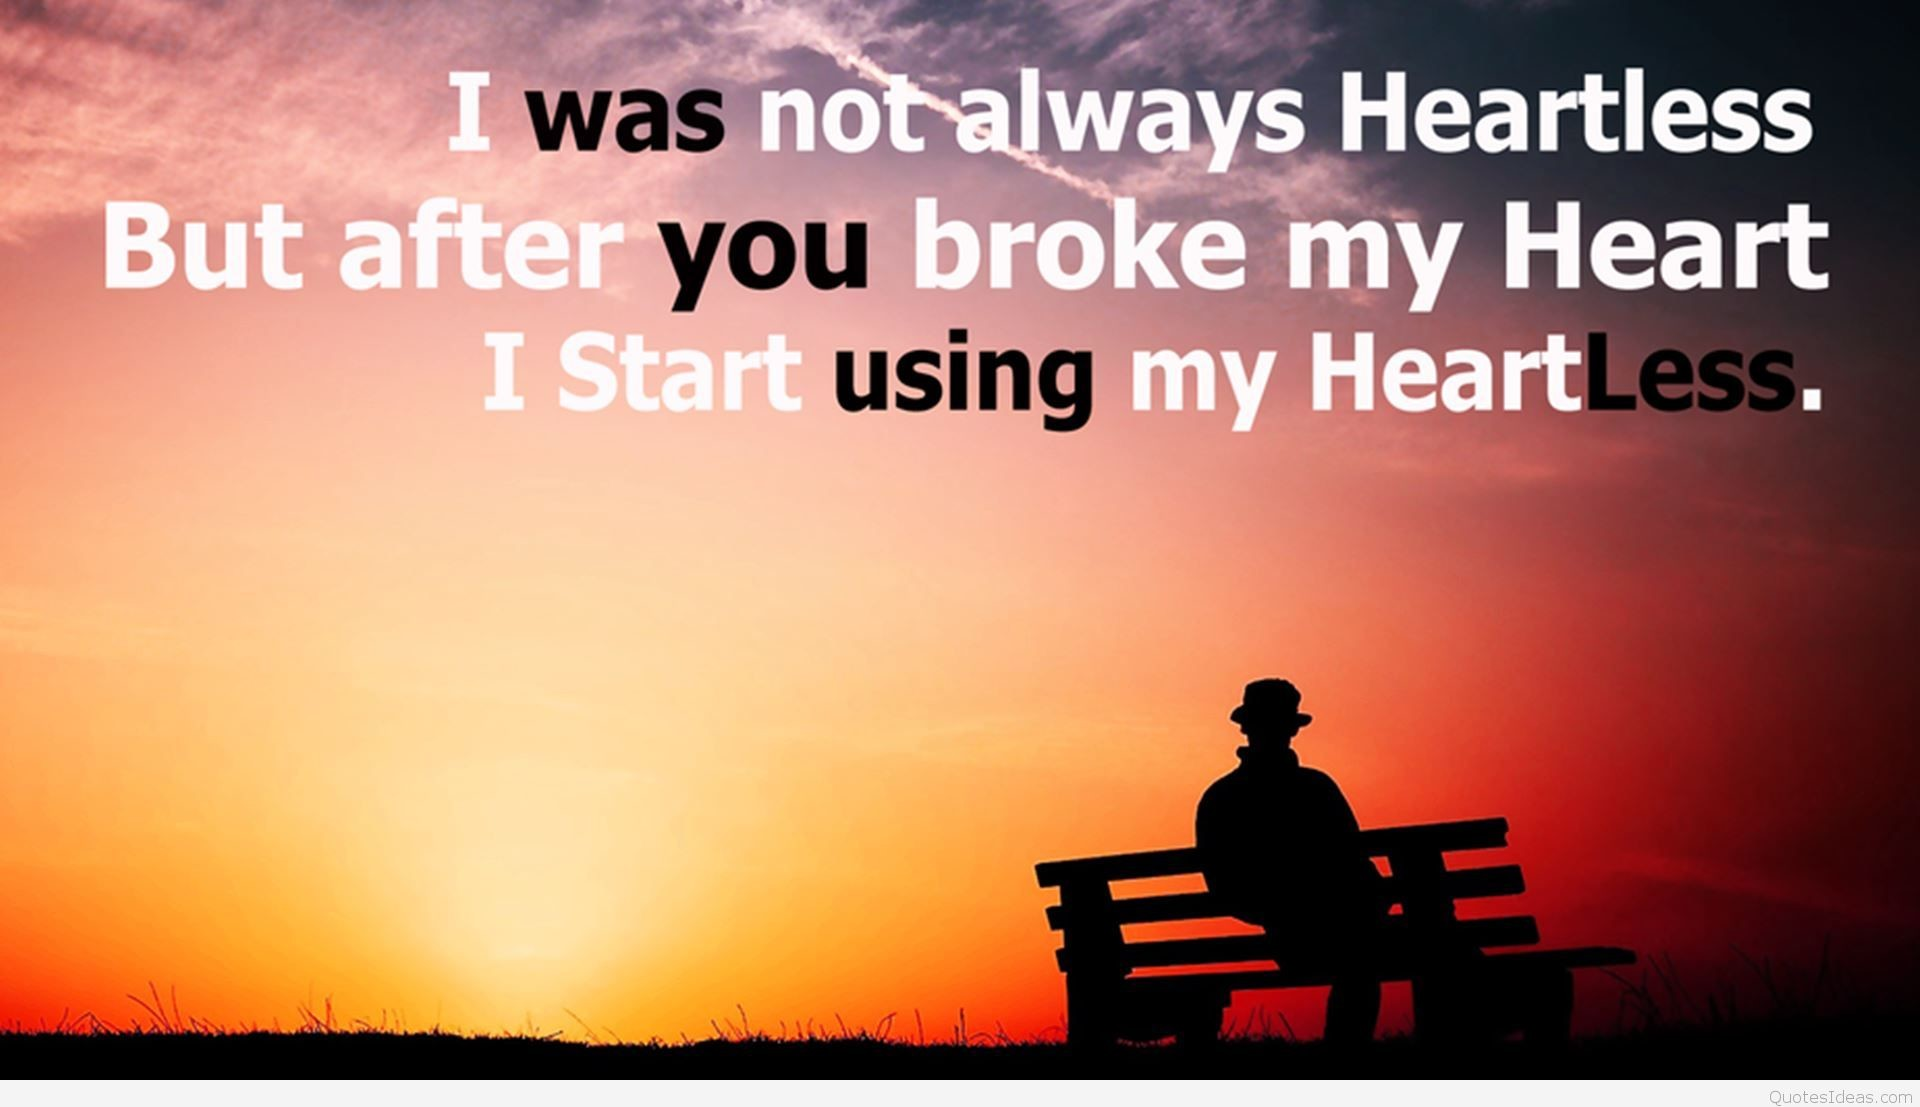 Broken Heart Quotes Wallpapers Free Download Broken Heart Backgrounds 183 ①